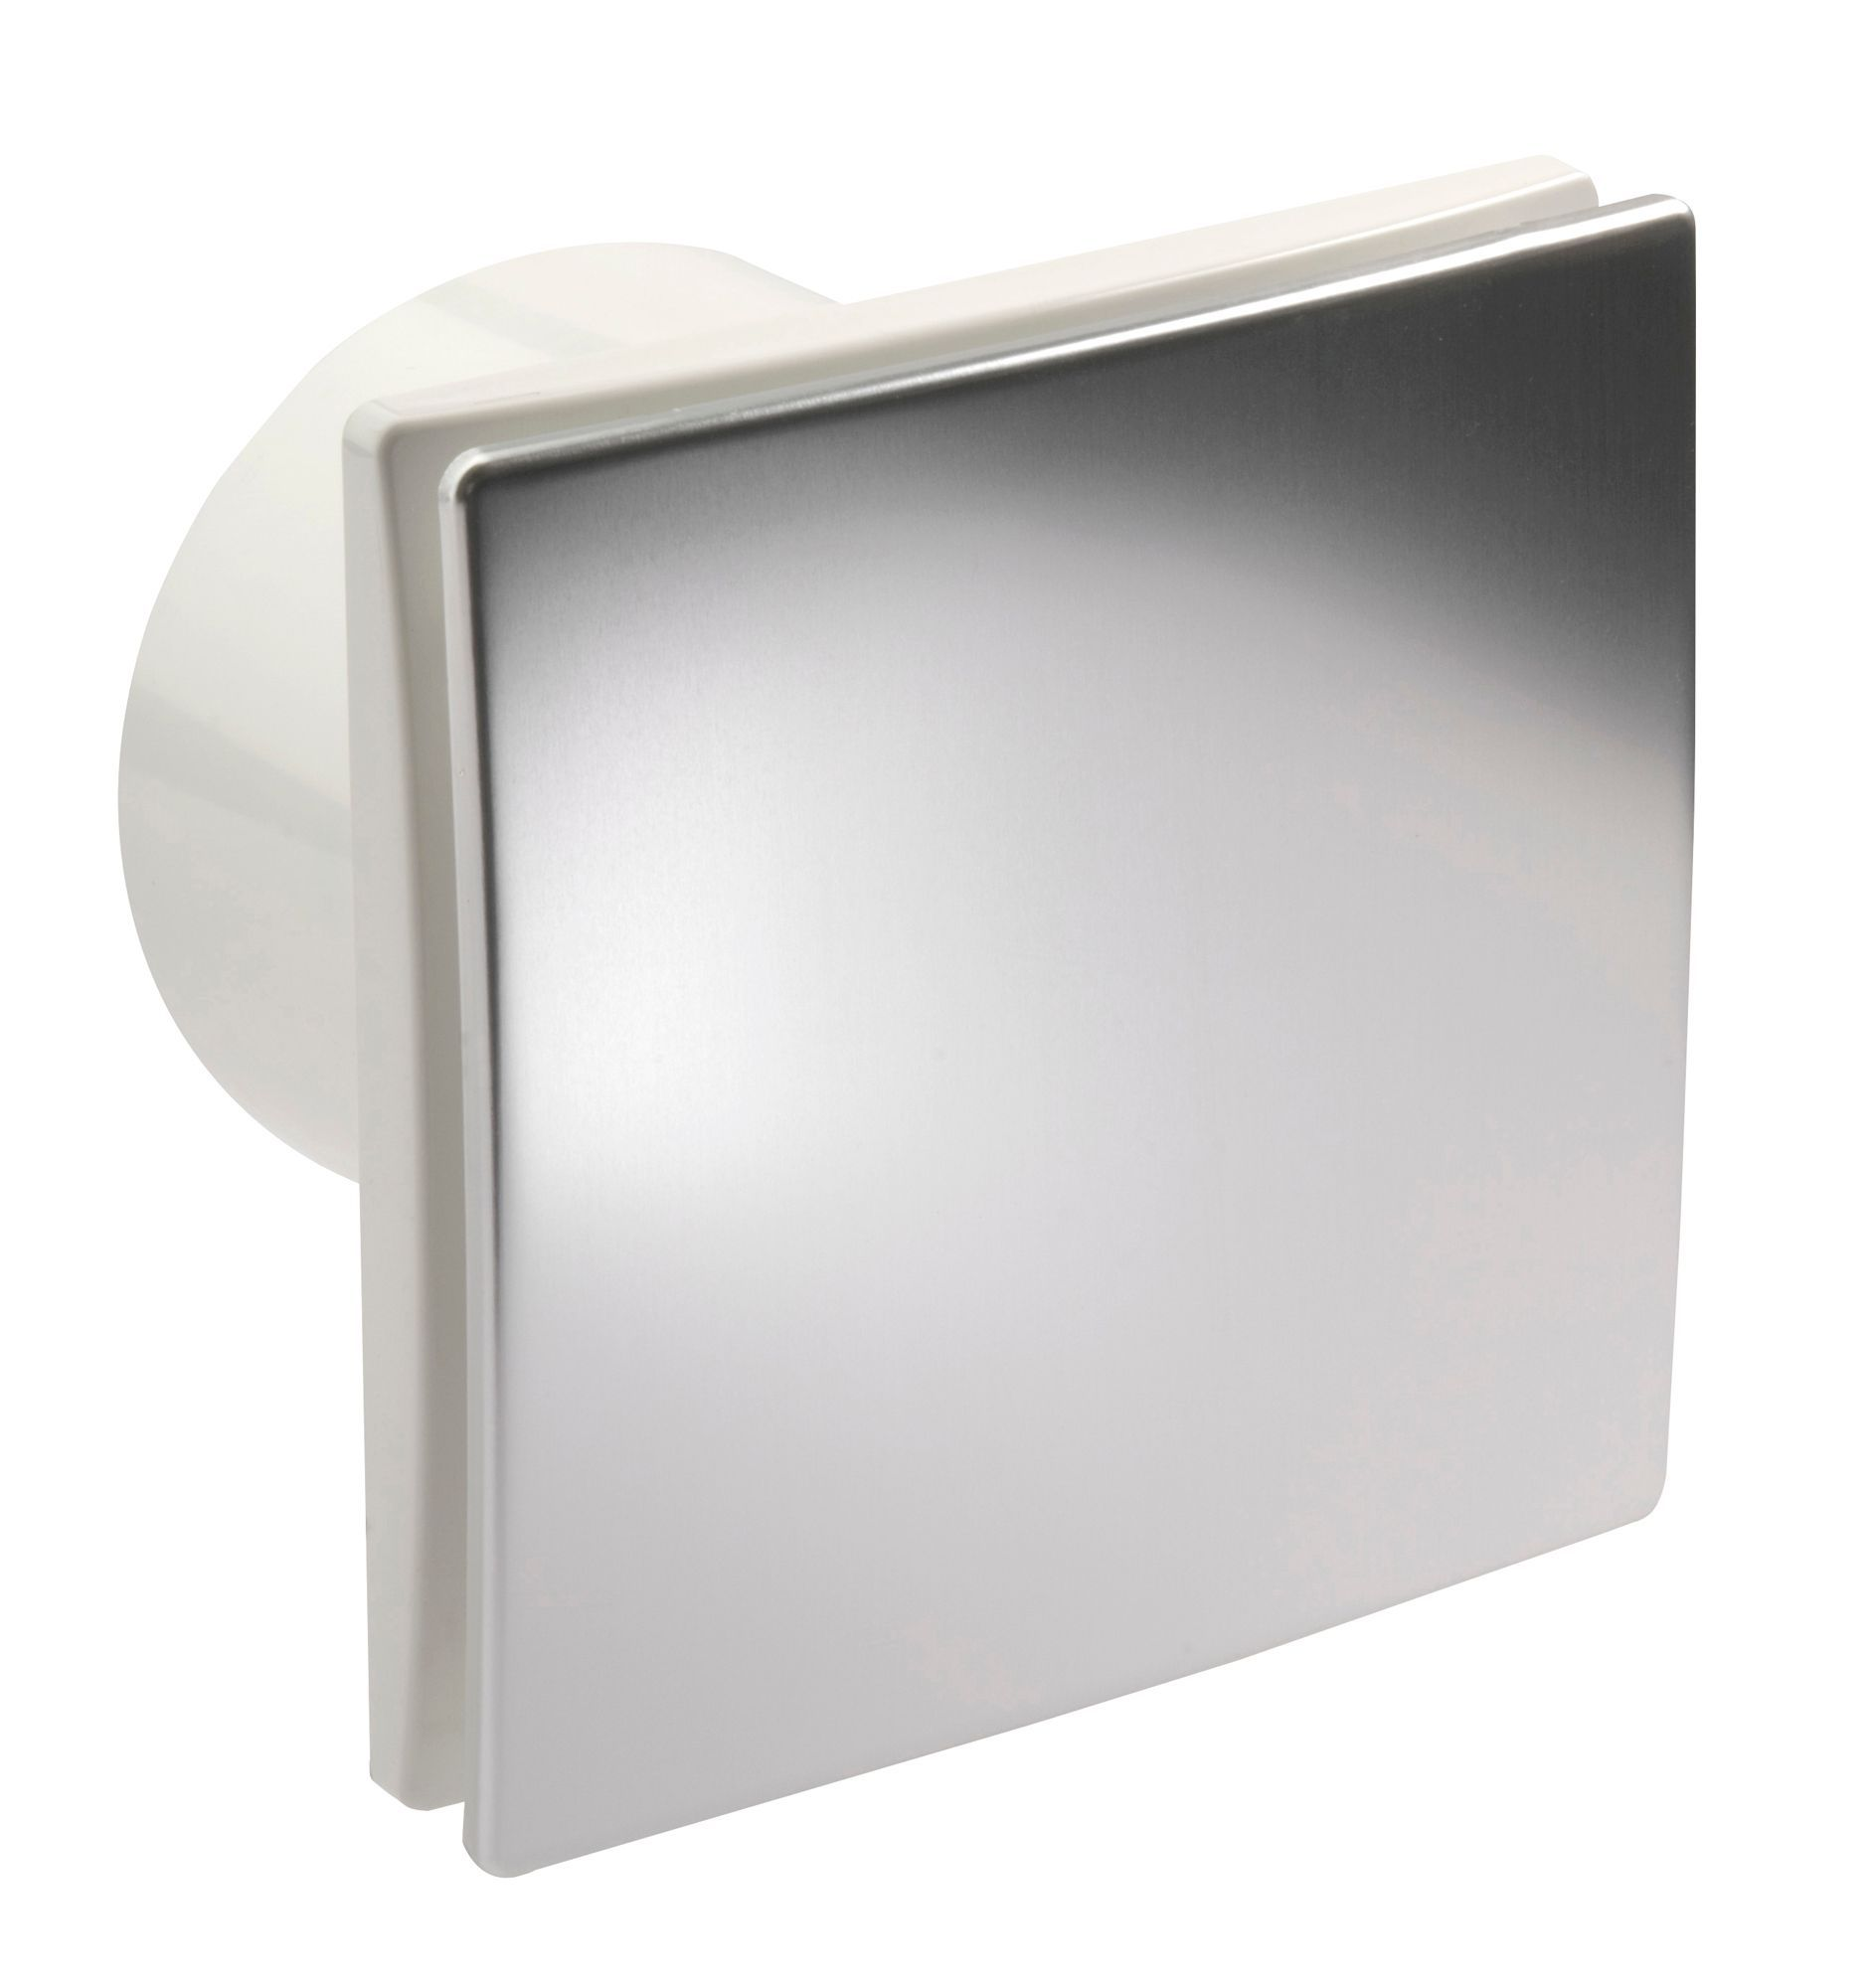 panasonic extractor bath flush exhaust home designs bathroom fan light roof fans vent with